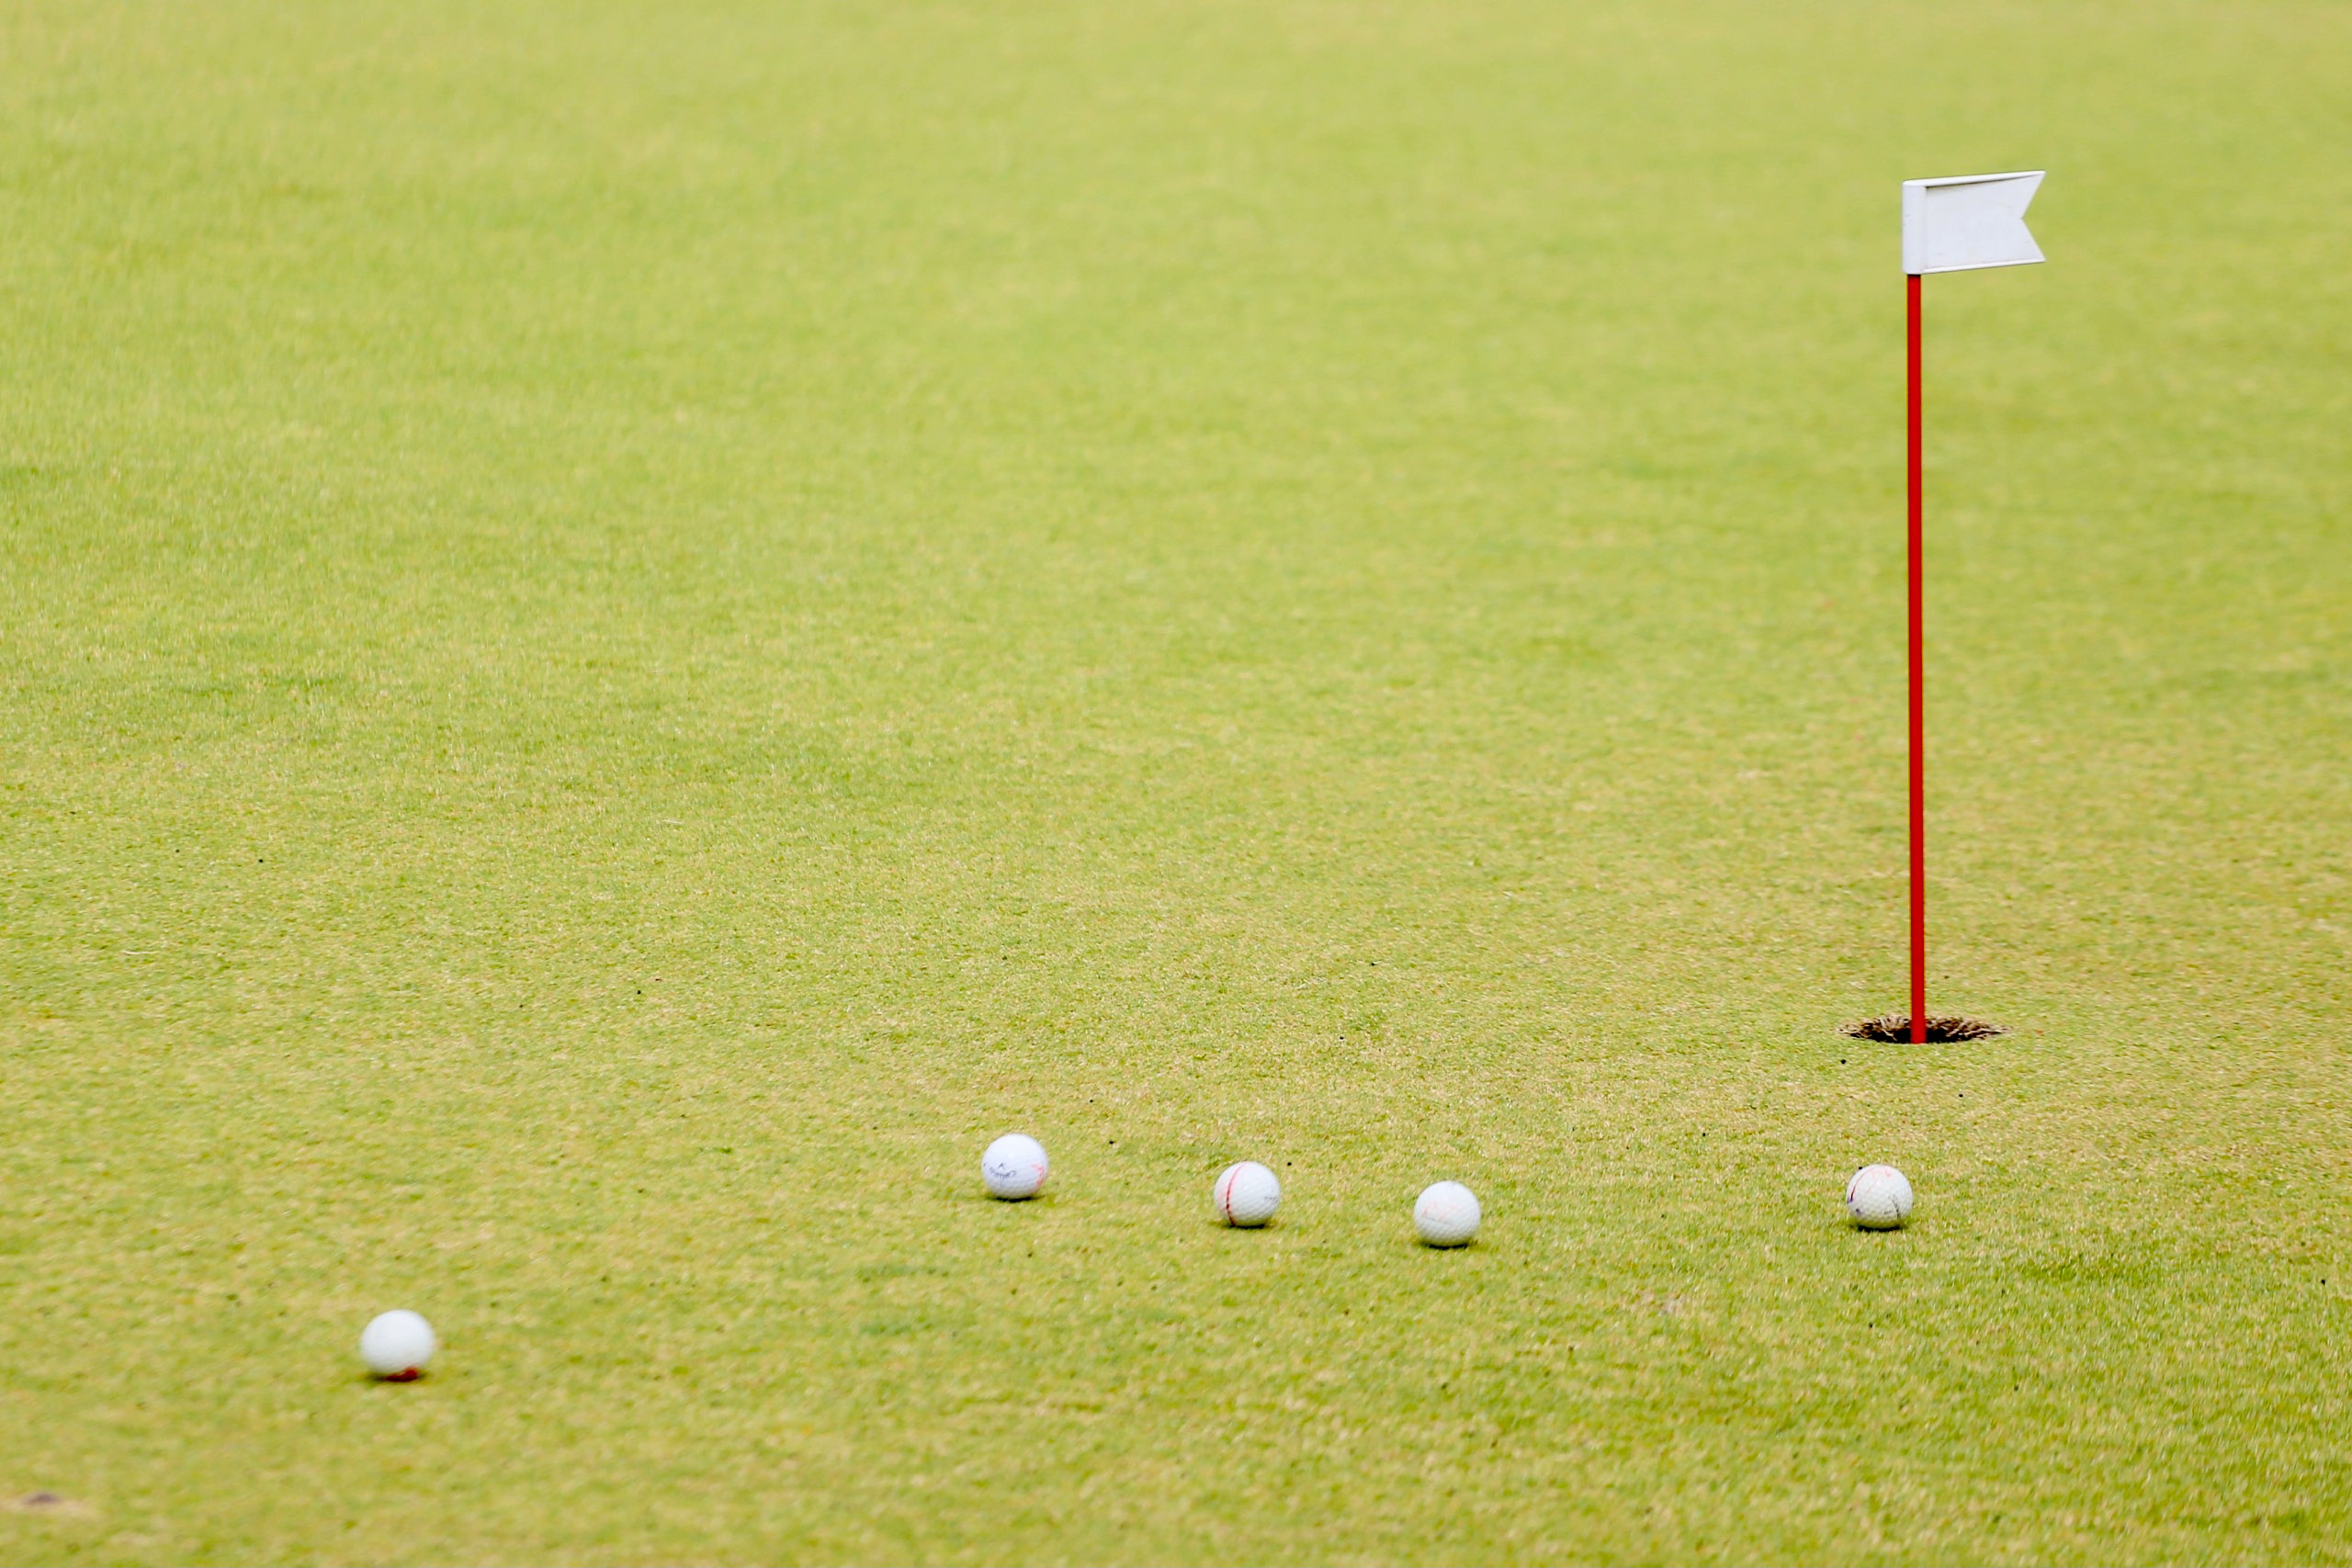 five golf balls rest next to a hole with a small flag